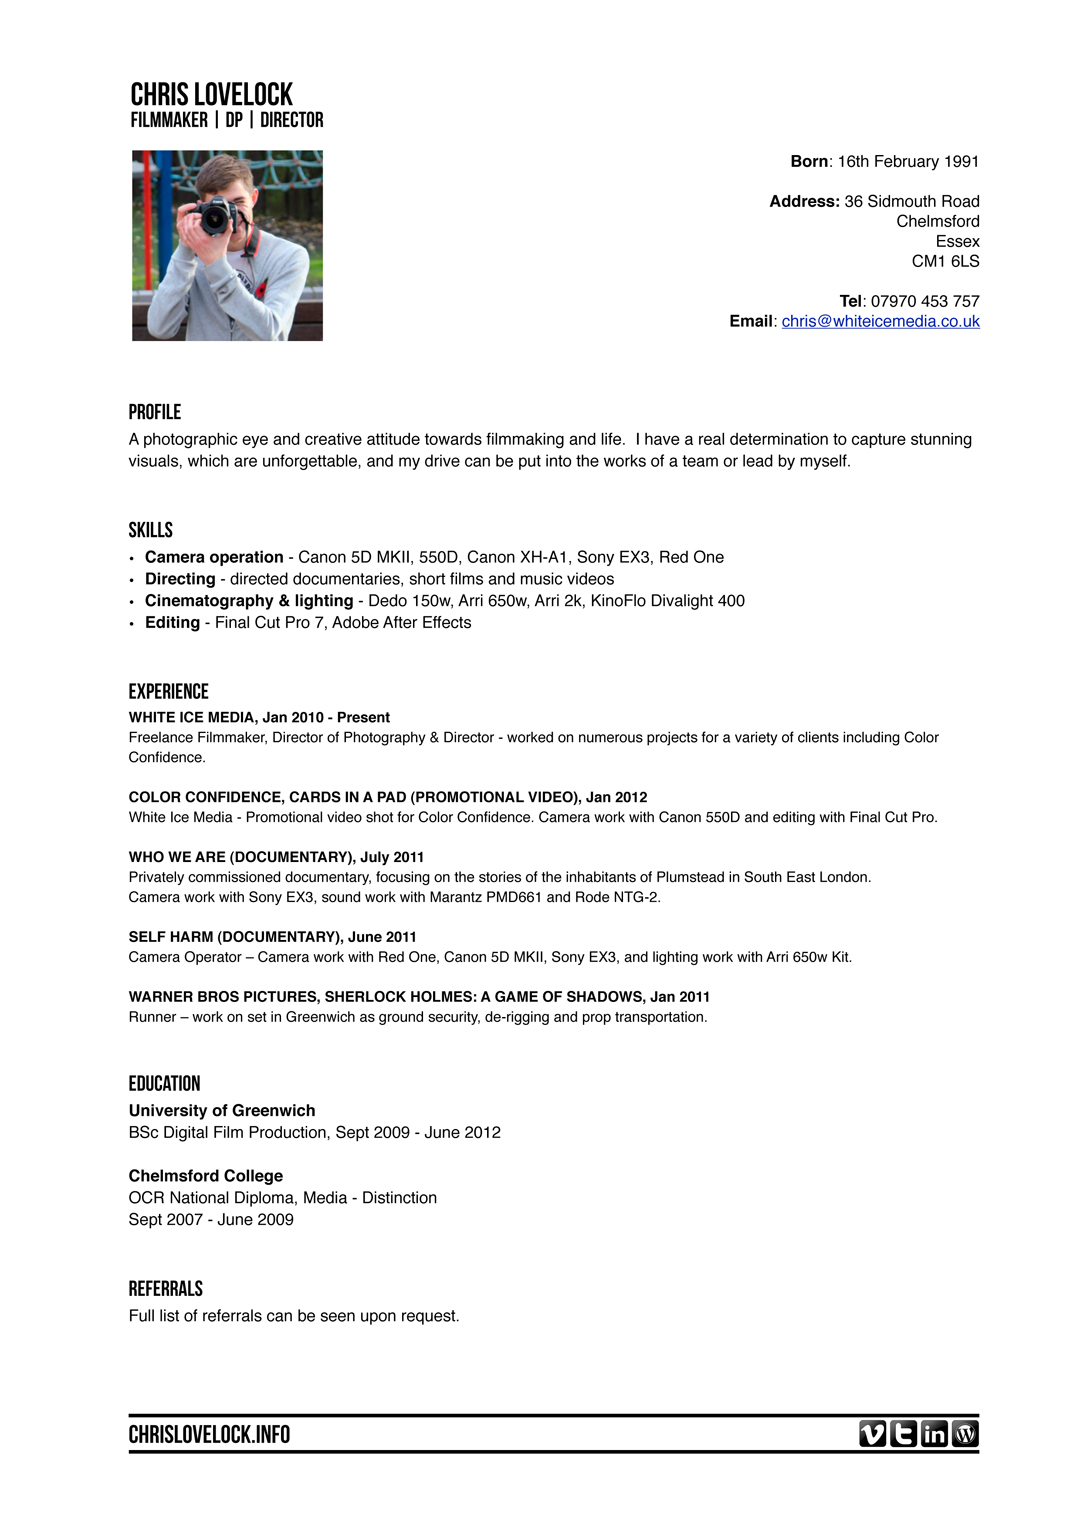 curriculum vitae  u2013 christopher lovelock